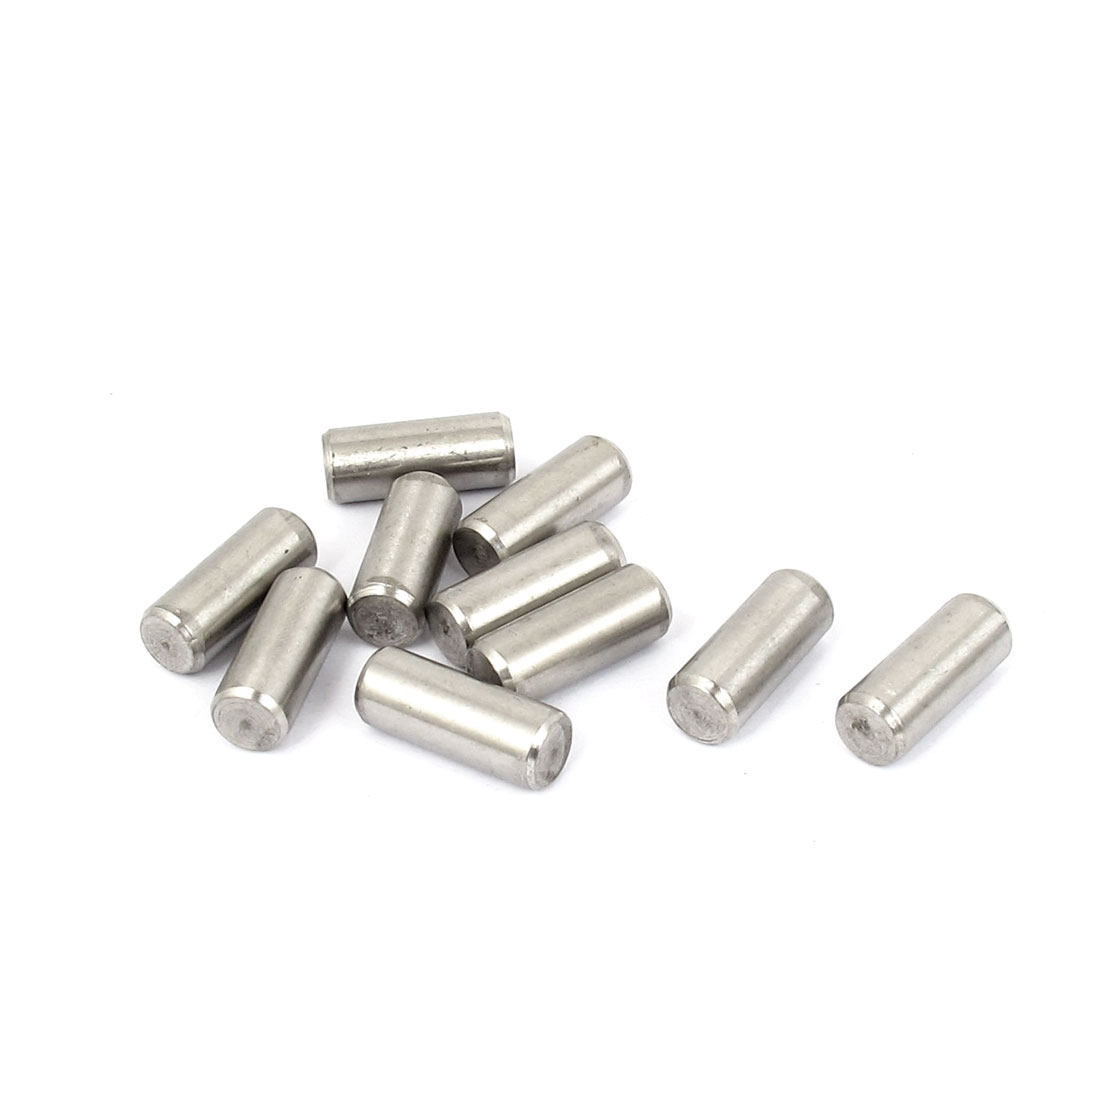 8mm x 20mm 304 Stainless Steel Dowel Pins Fasten Elements Silver Tone 10pcs